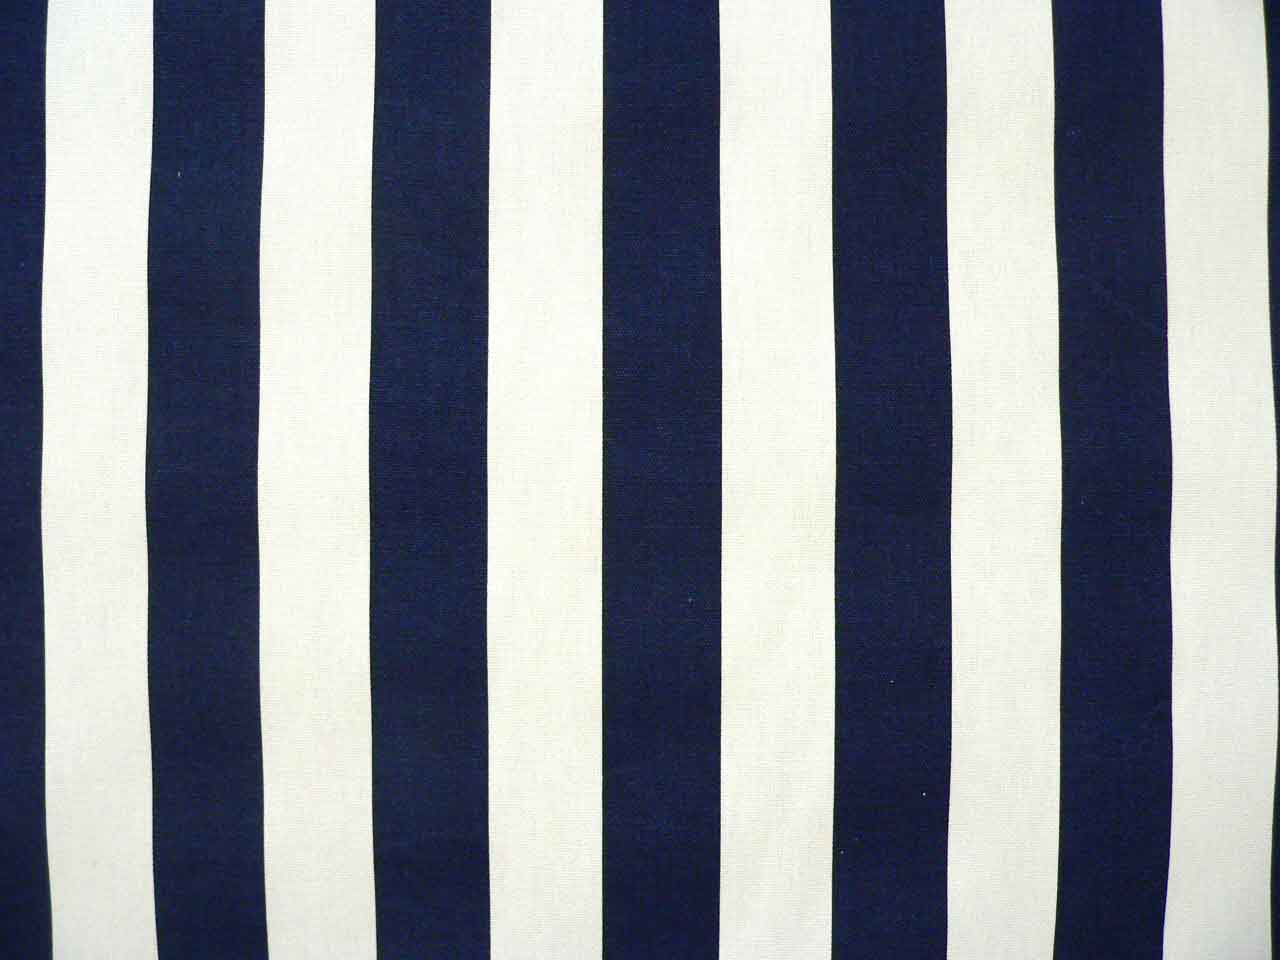 Displaying 19 gt images for navy blue and white horizontal stripes